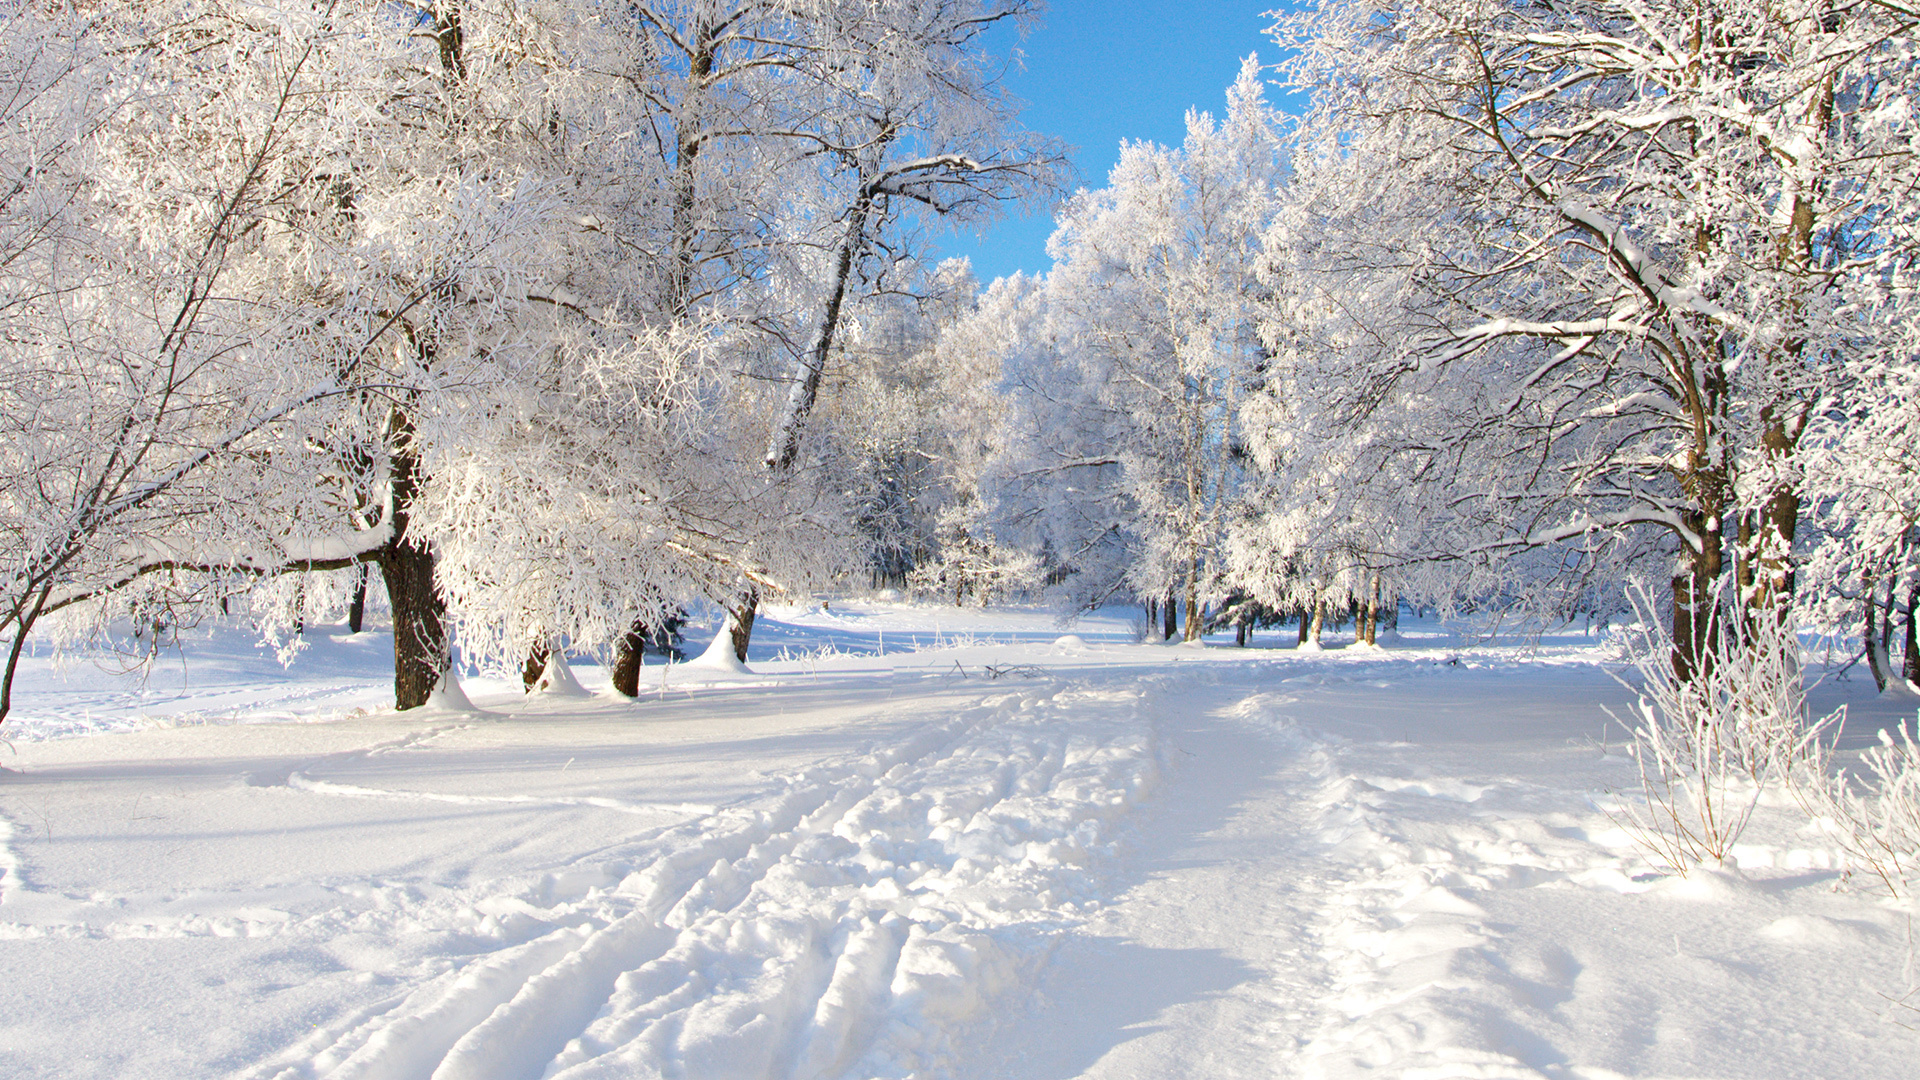 Download mobile wallpaper Landscape, Winter, Snow for free.